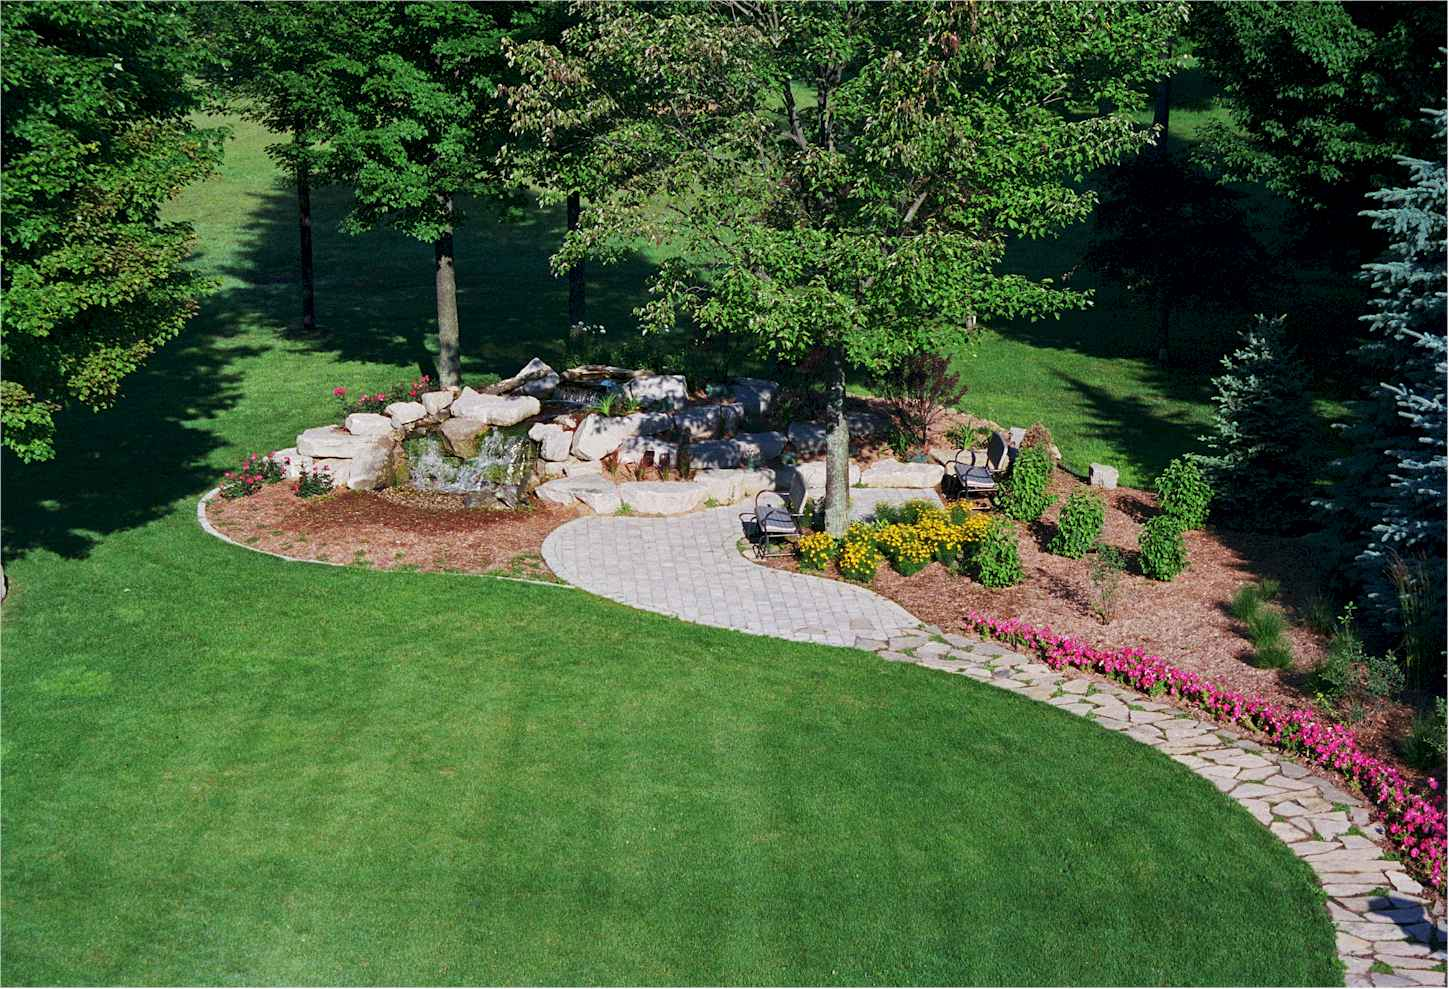 About - D & D Excavating & Landscape Service, Inc. is honest, trustworthy, and dependable. We offer FREE estimates on landscaping, lawn maintenance, excavation, demolition, and snow removal services.